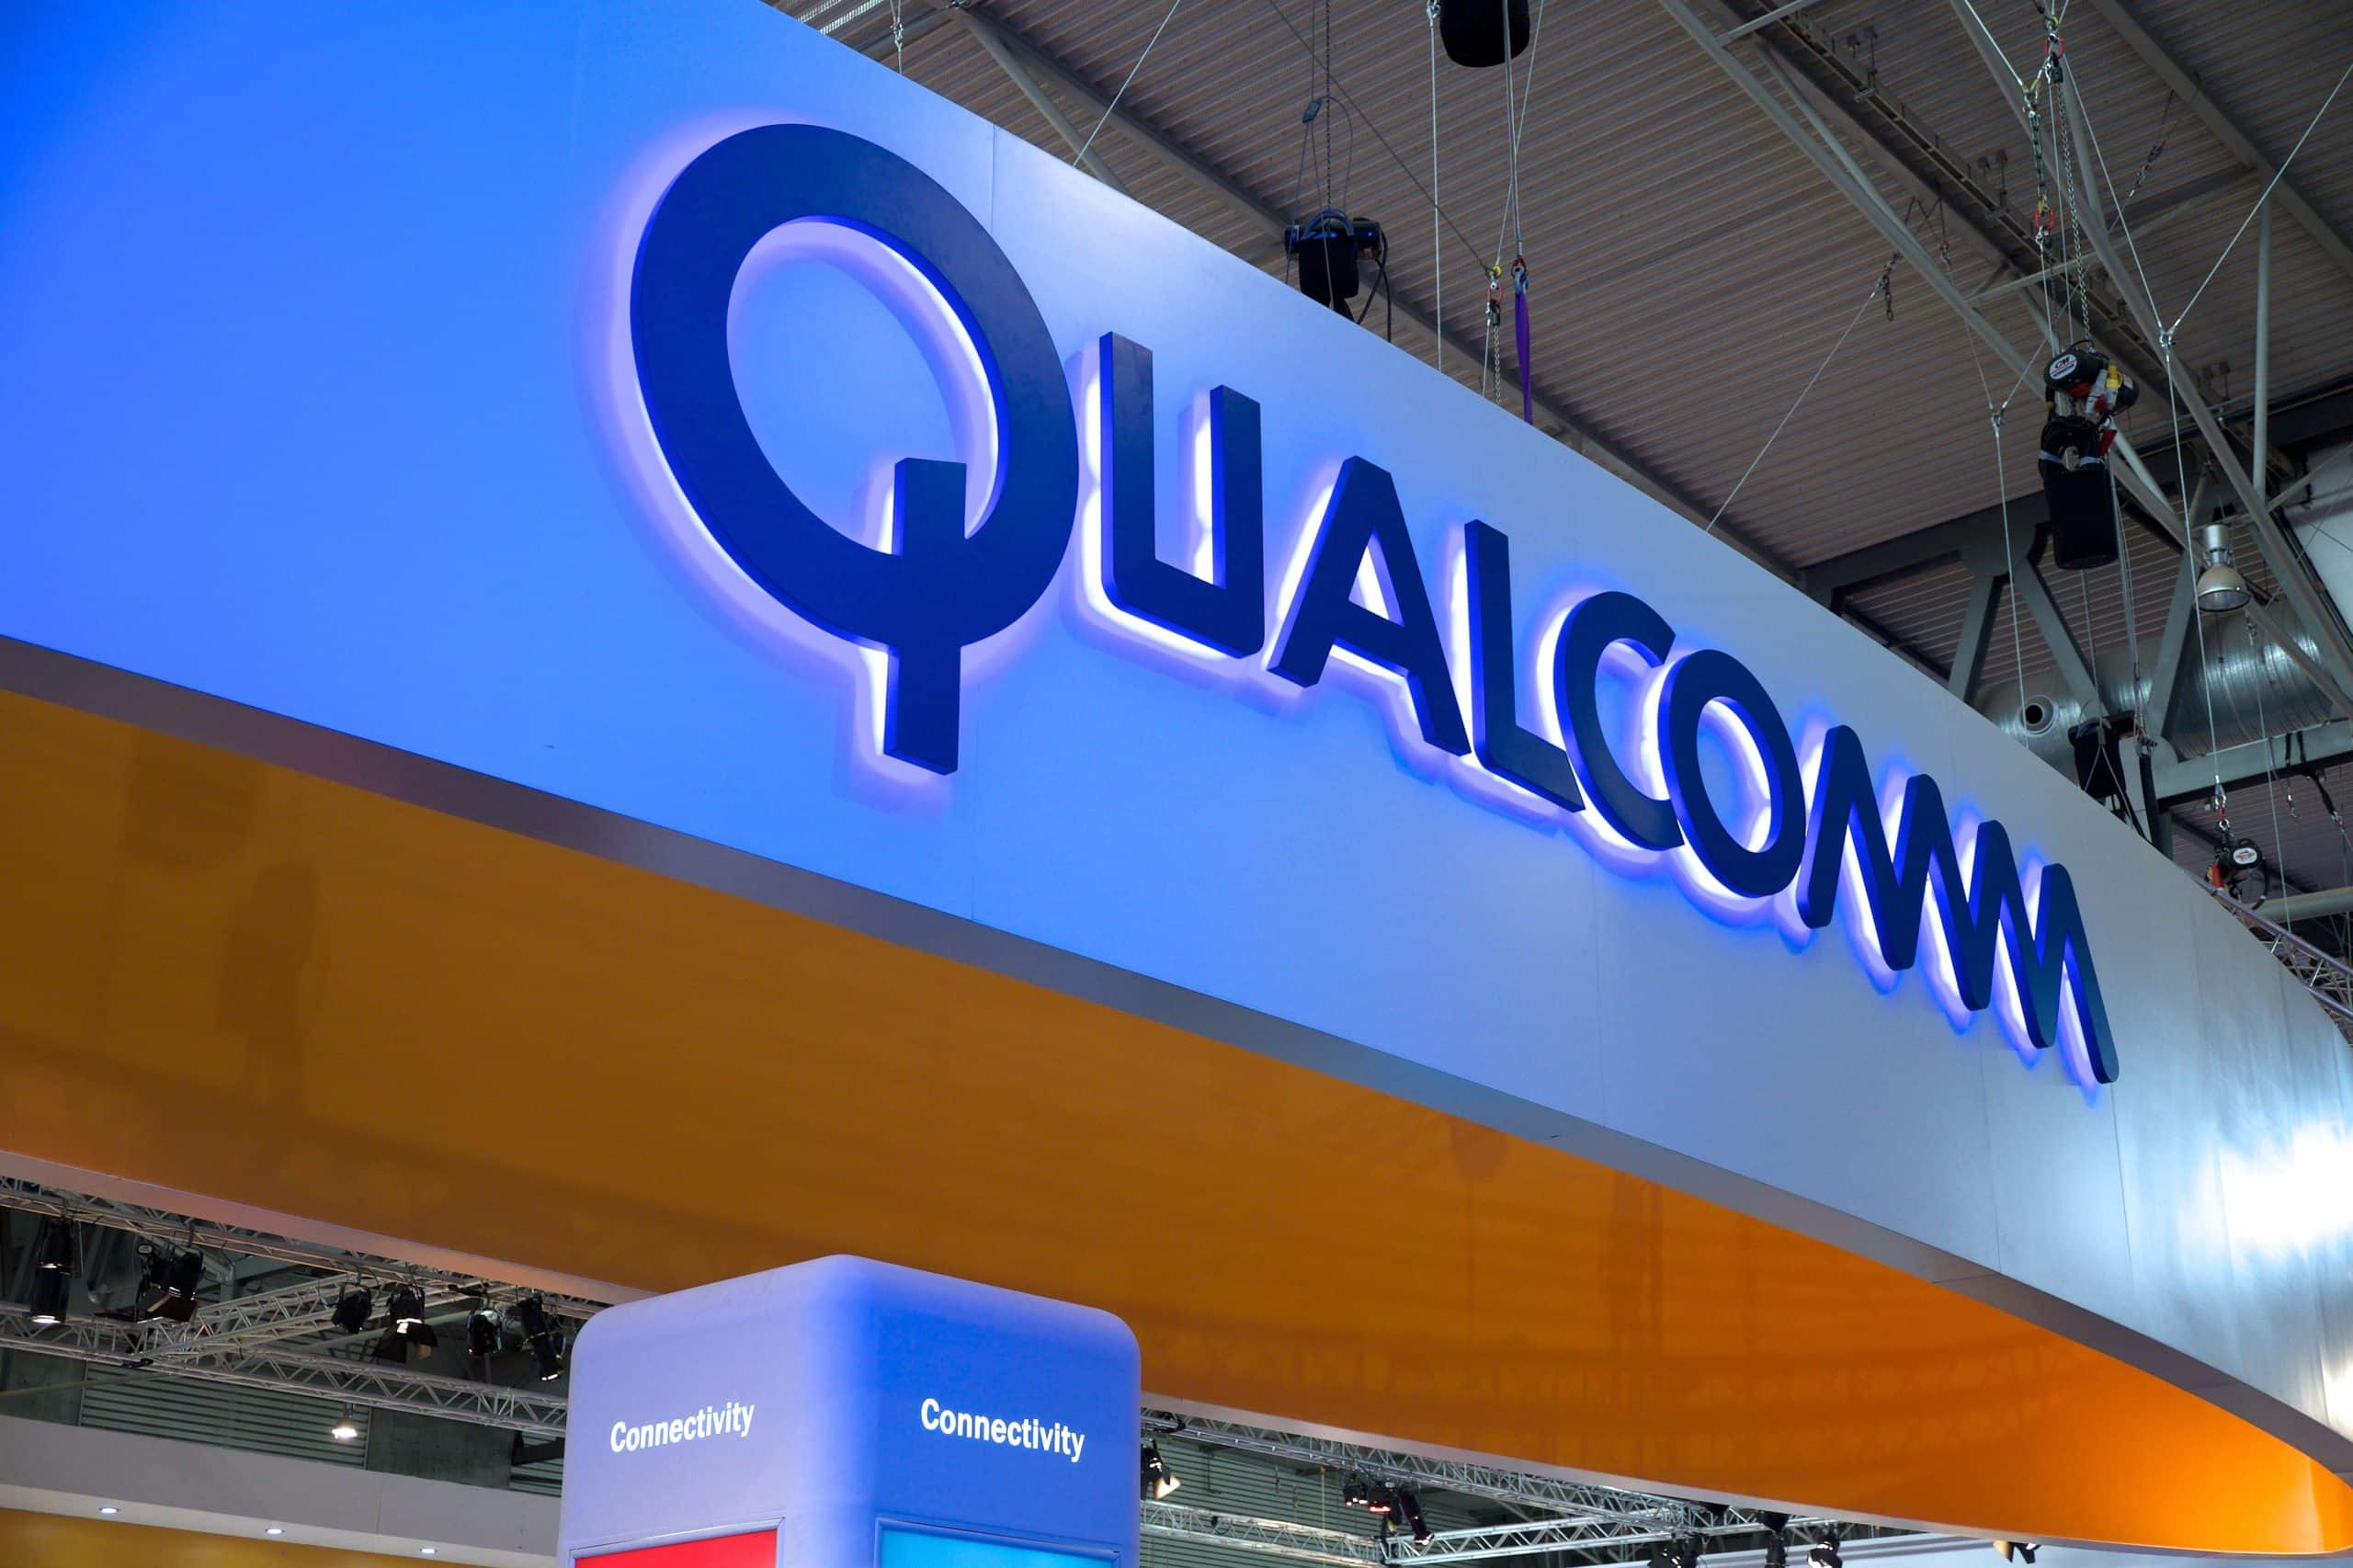 Qualcomm Ventures makes equity investment in boat